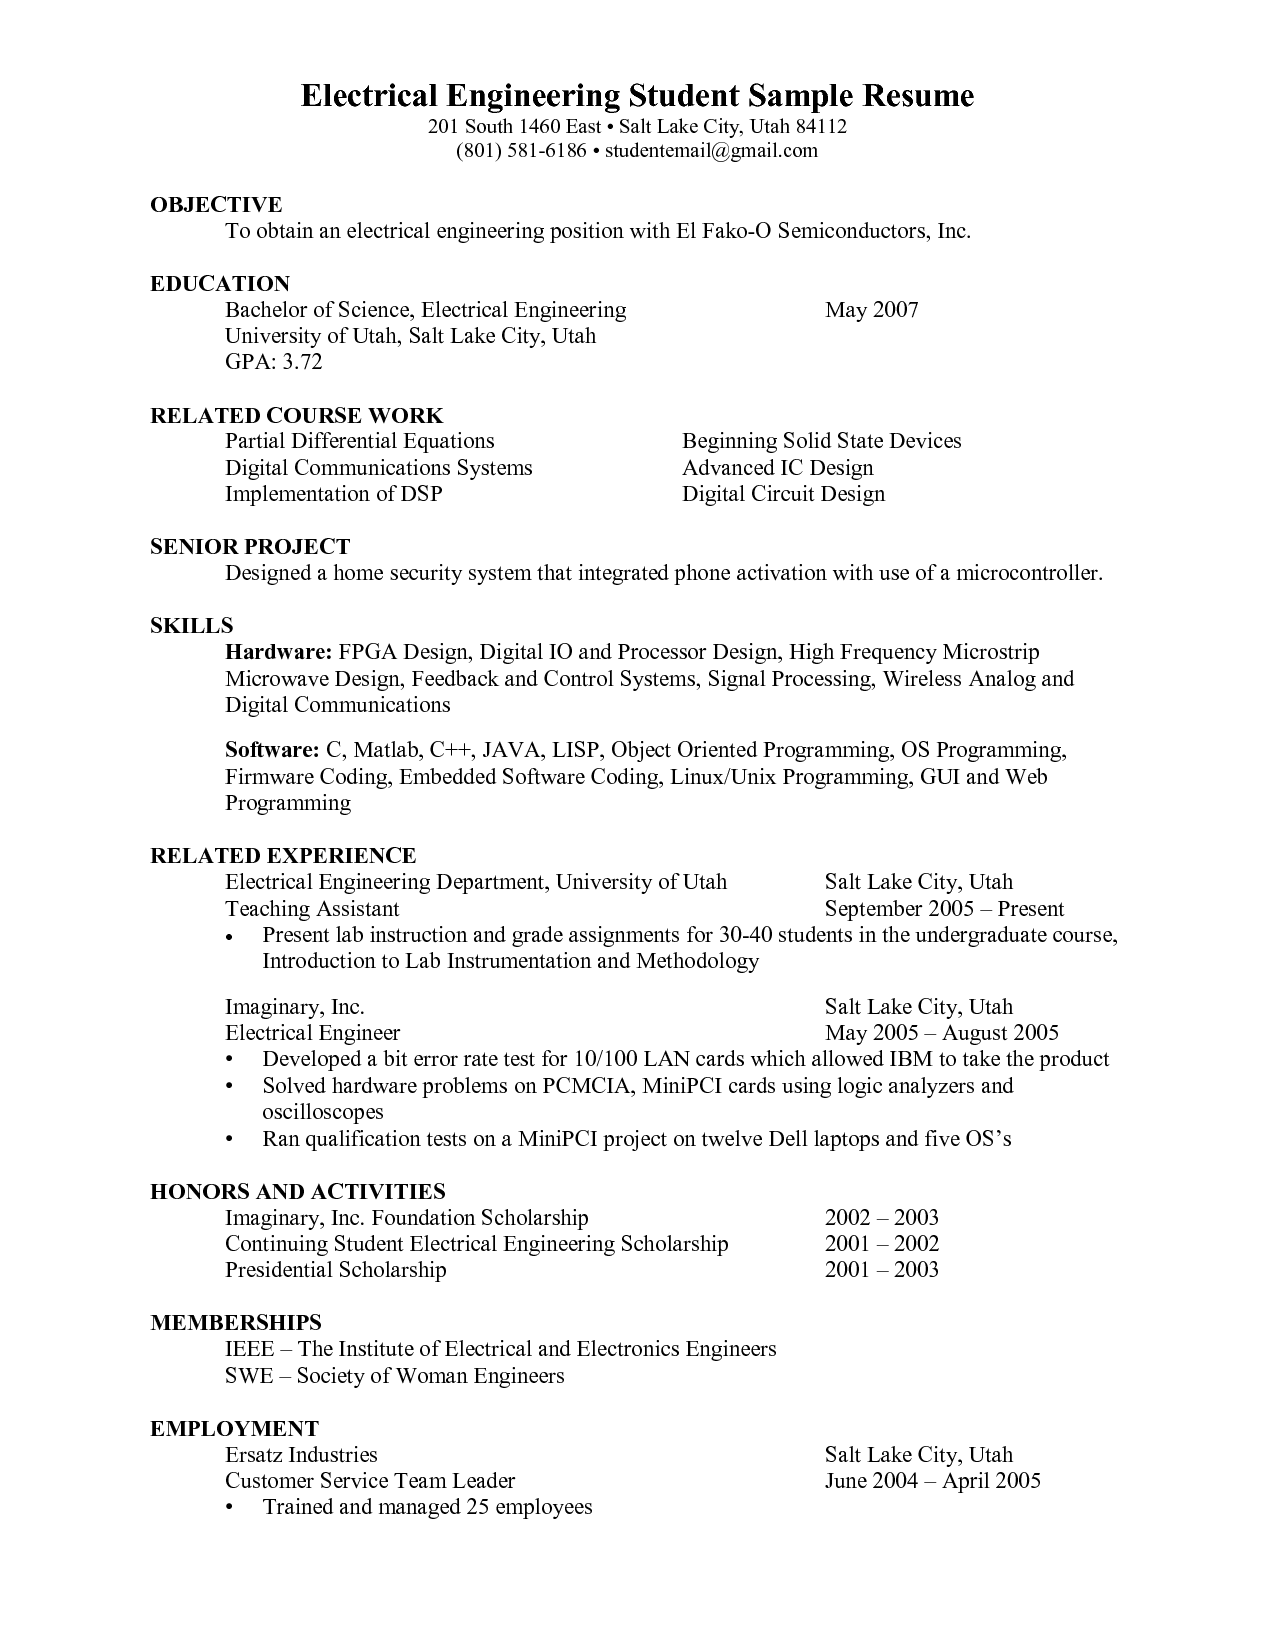 Senior Electrical Engineer Sample Resume Pinjobresume On Resume Career Termplate Free  Pinterest